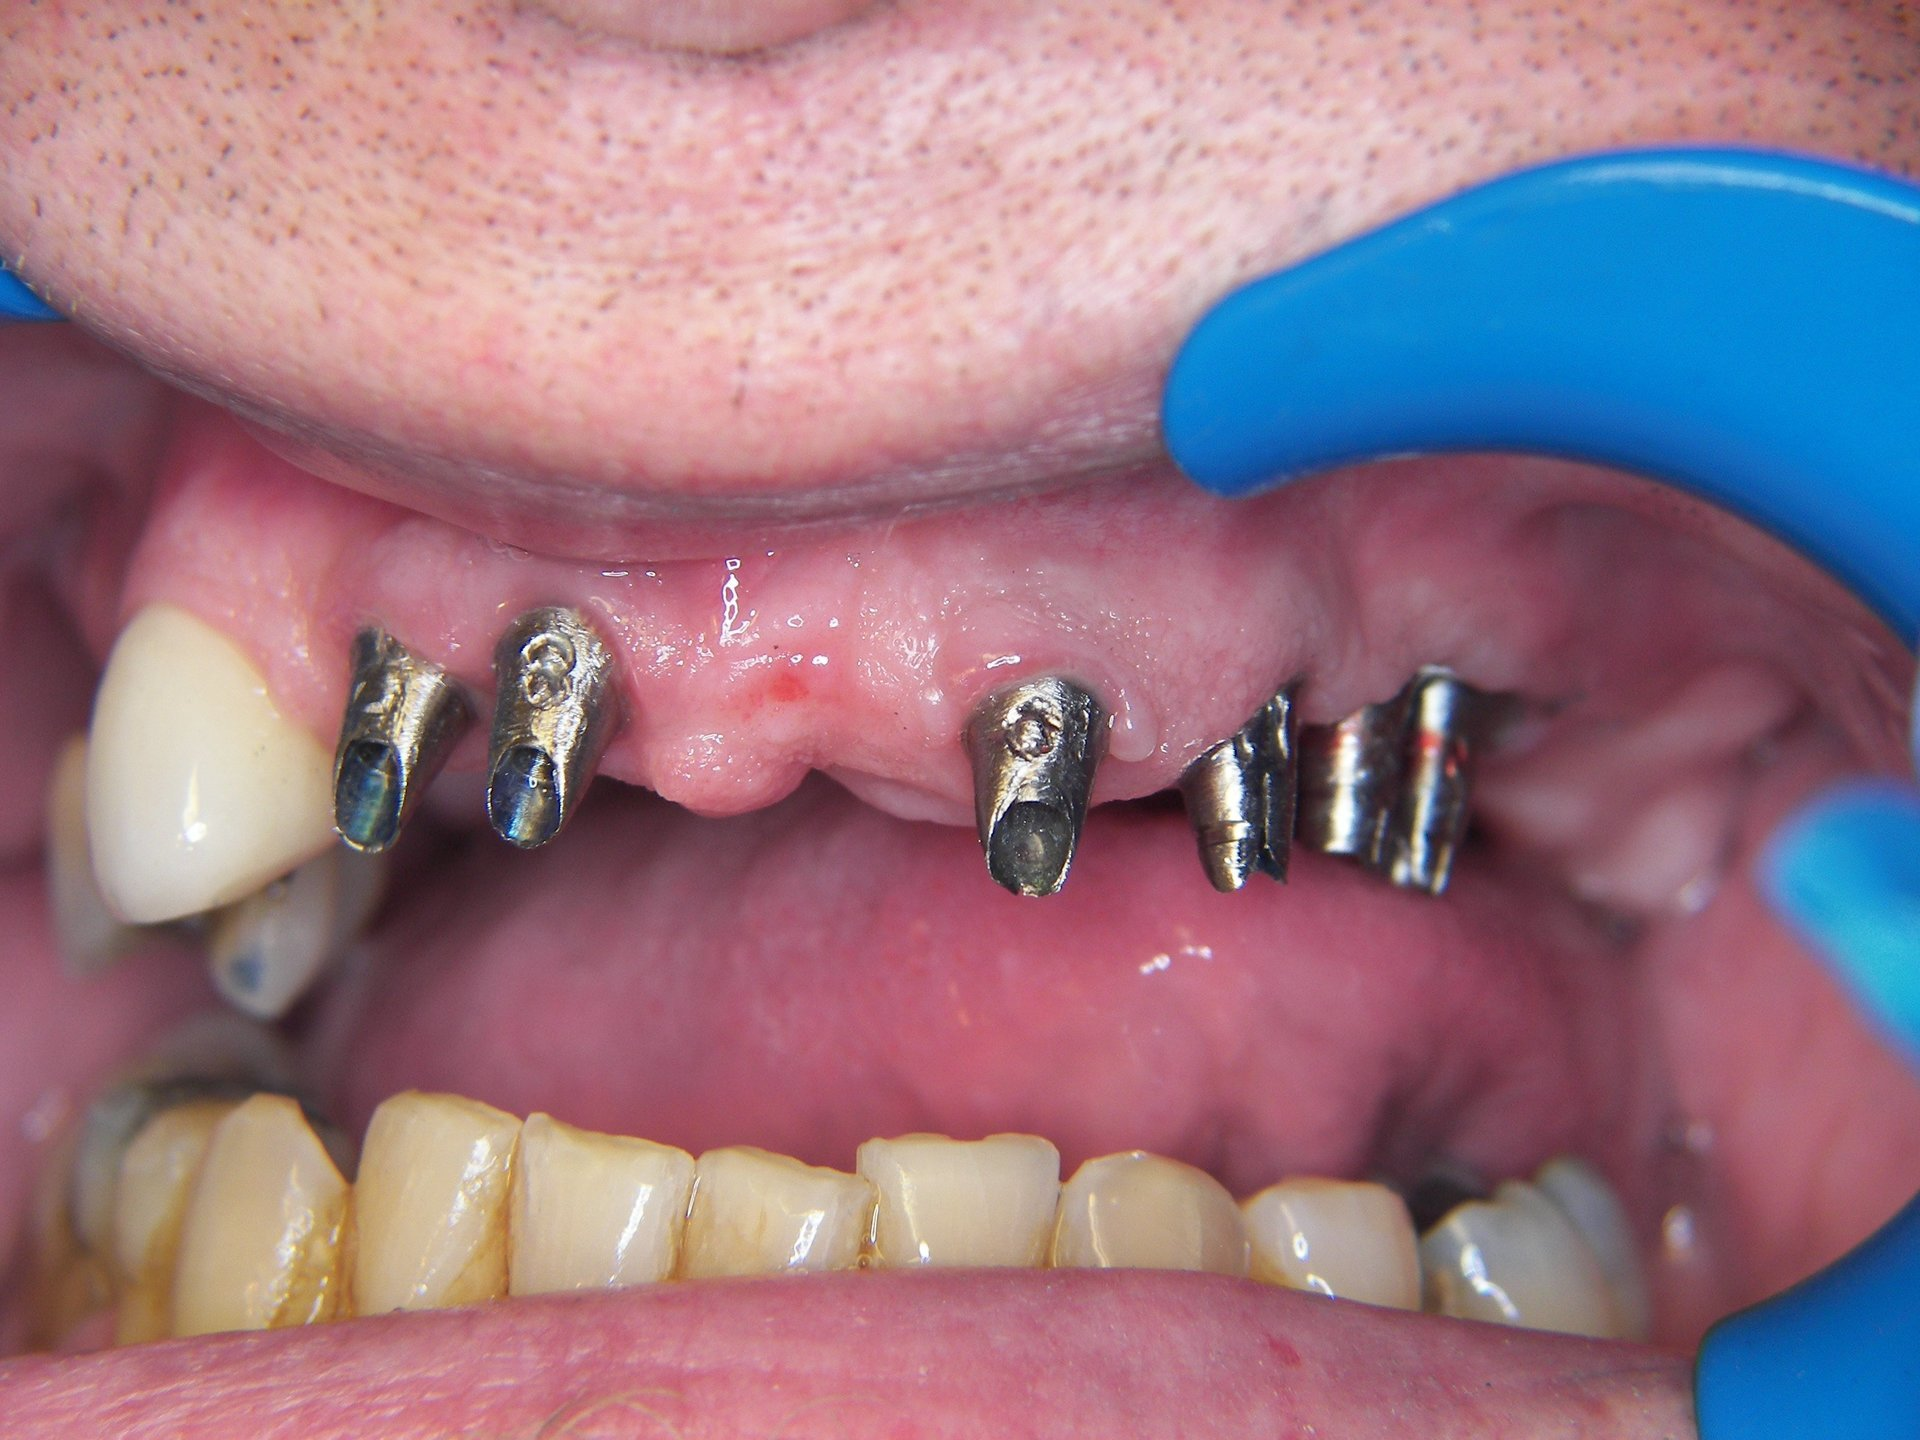 Full mouth reconstruction using implants